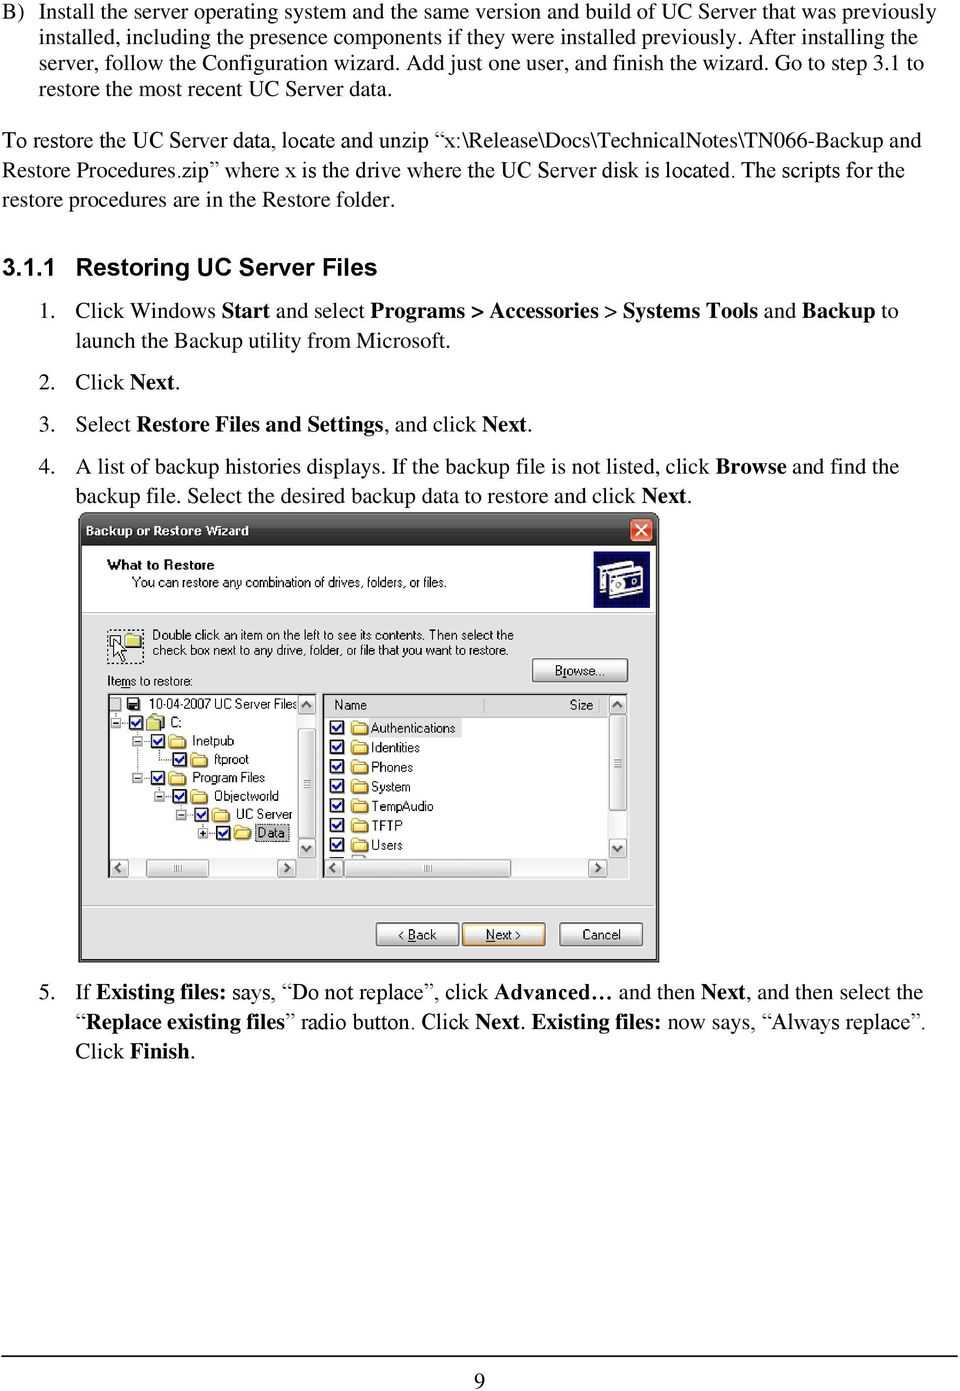 To restore the UC Server data, locate and unzip x:\release\docs\technicalnotes\tn066-backup and Restore Procedures.zip where x is the drive where the UC Server disk is located.